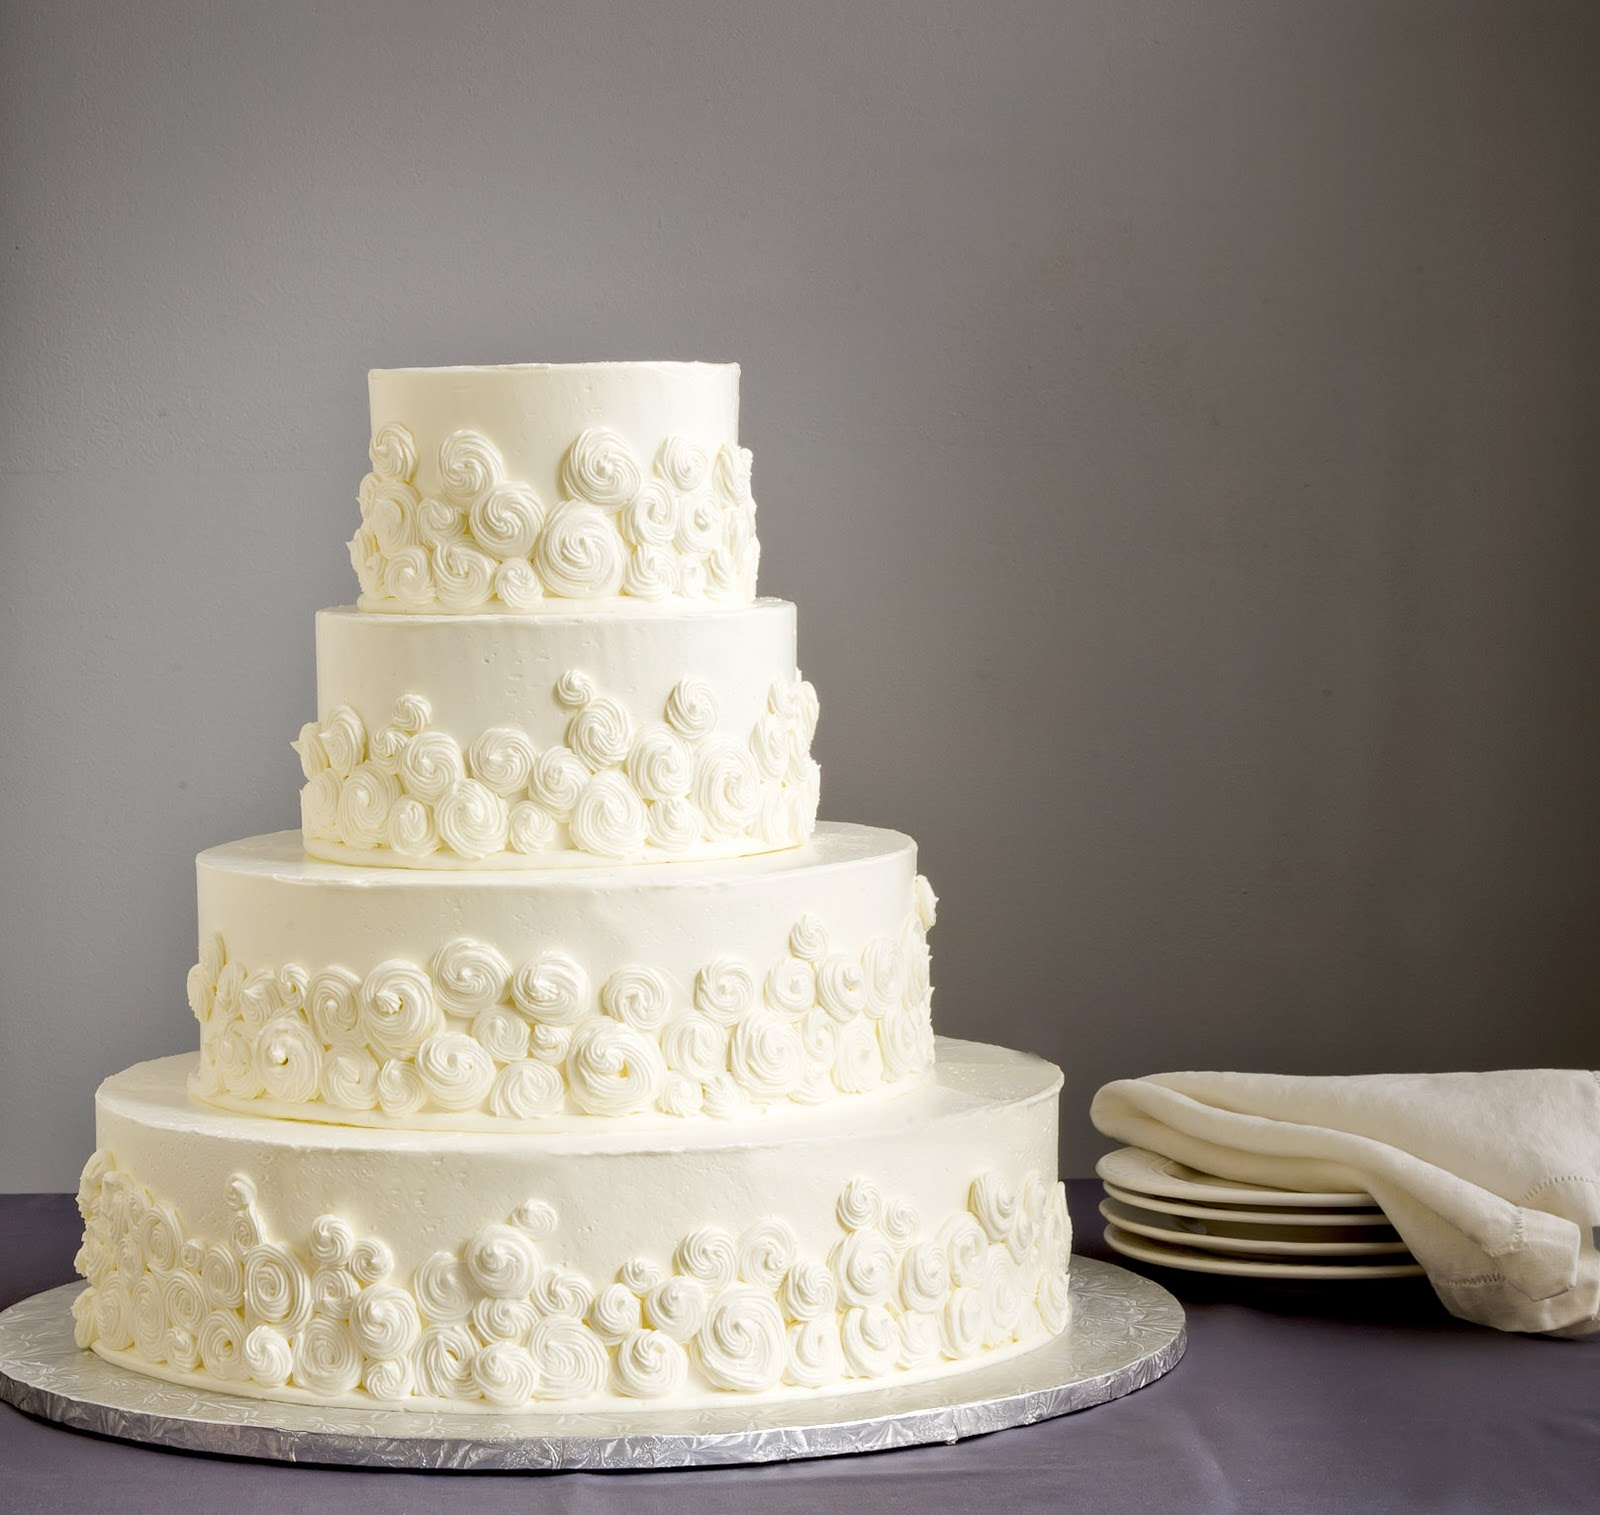 Cake Decorating Ideas For Wedding Simple : A Simple Cake: THREE NEW Wedding Cake Ideas